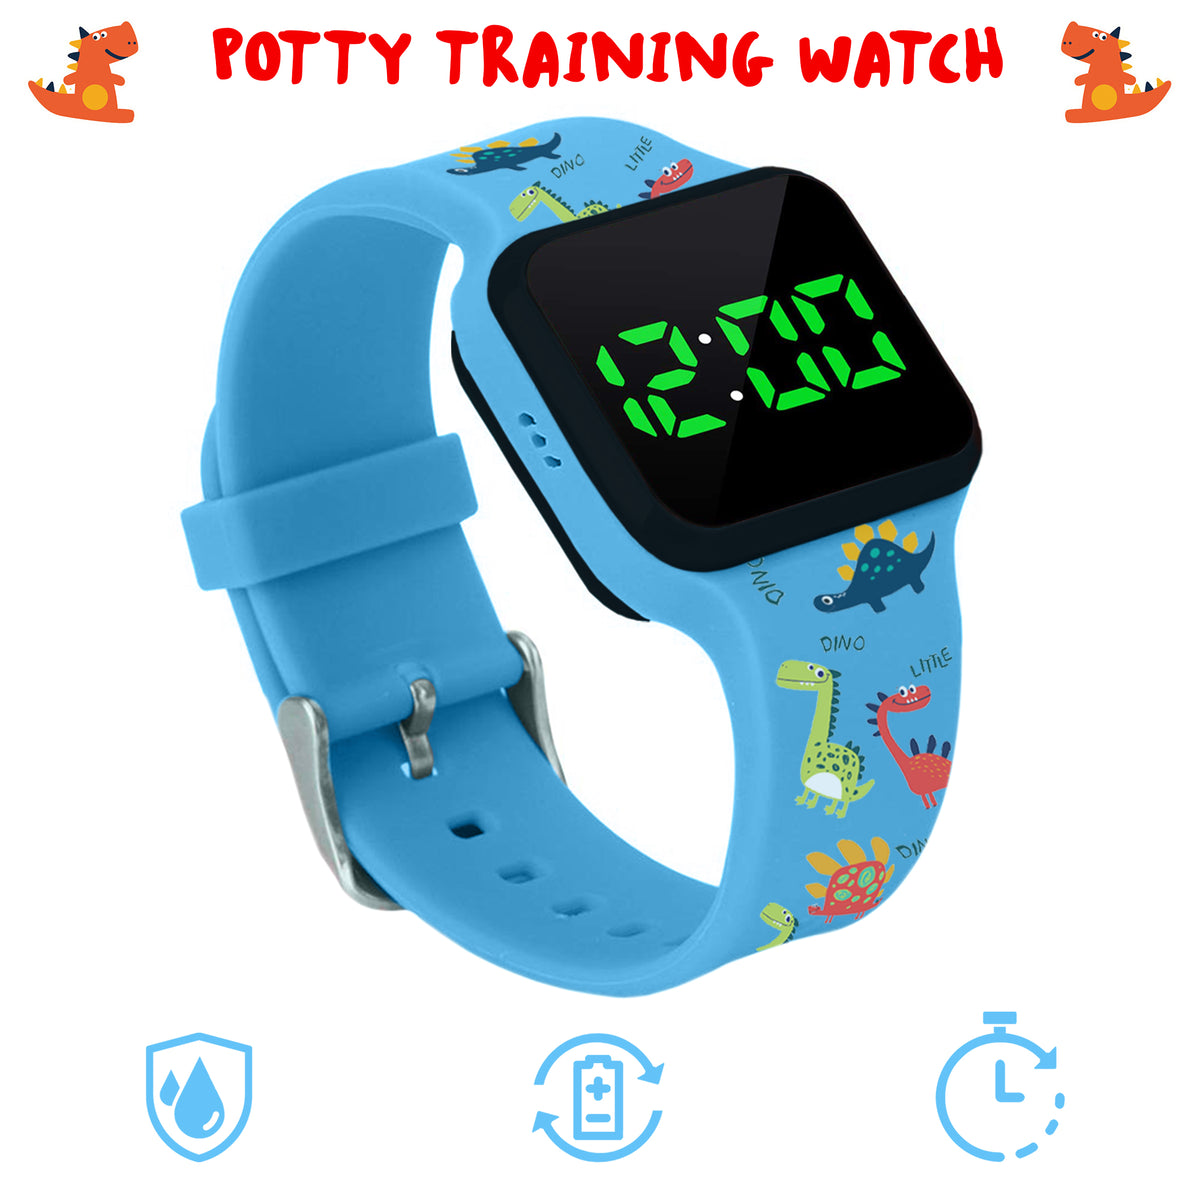 Potty Training Timer Watch with Flashing Lights and Music Tones - Water Resistant, Rechargeable, Dinosaur Pattern Colorful Band - Athena